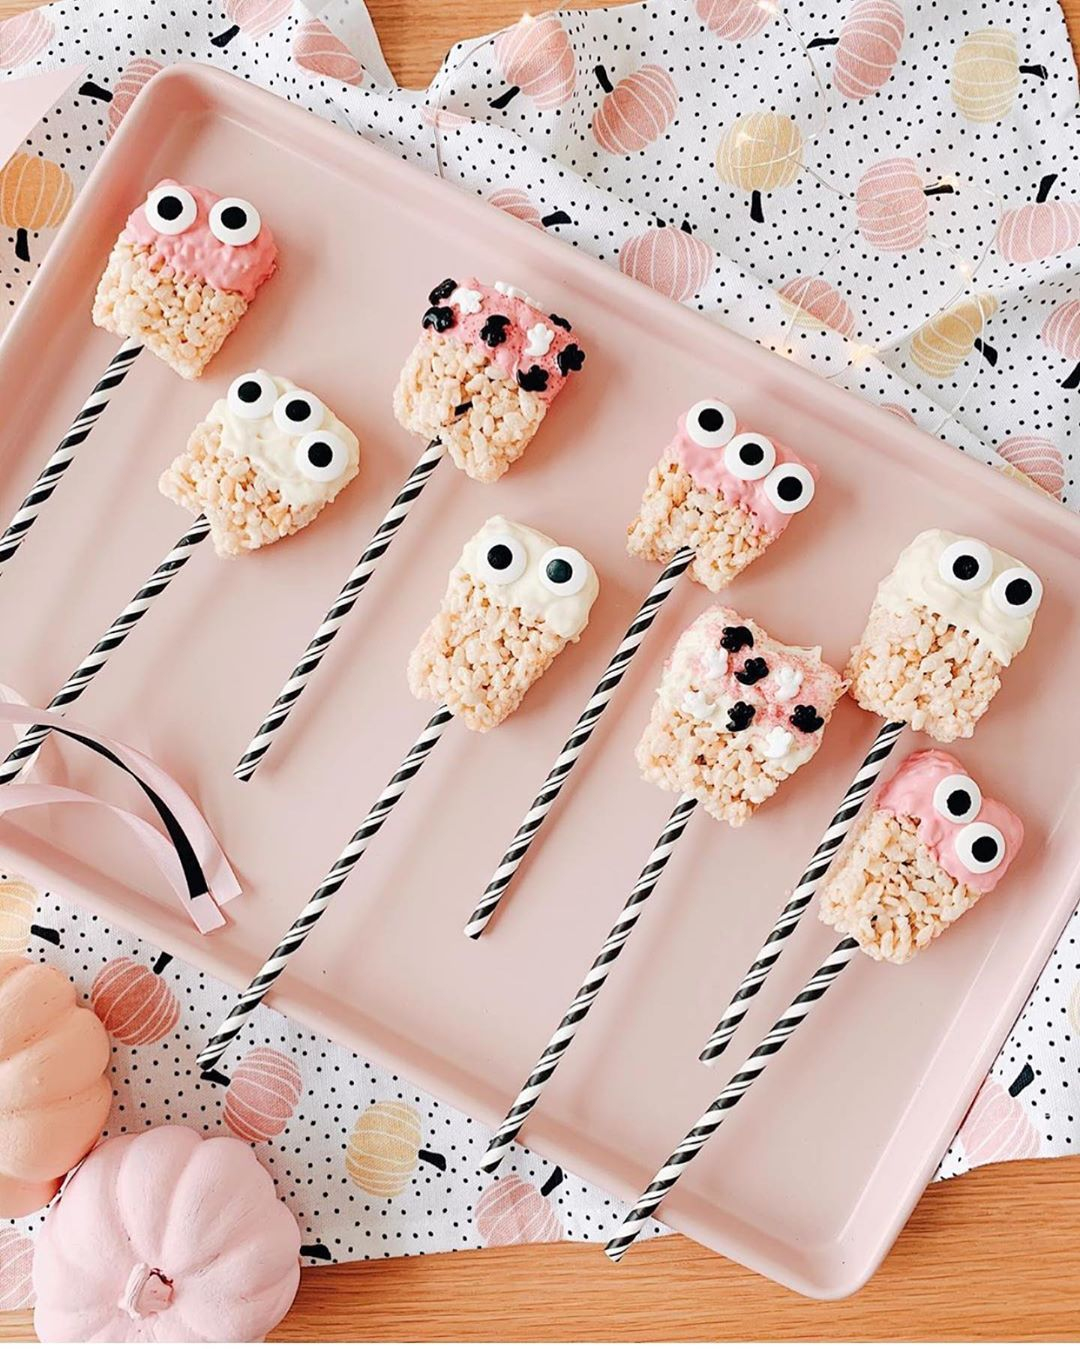 The Mama Notes On Instagram How Cute Are These Treats